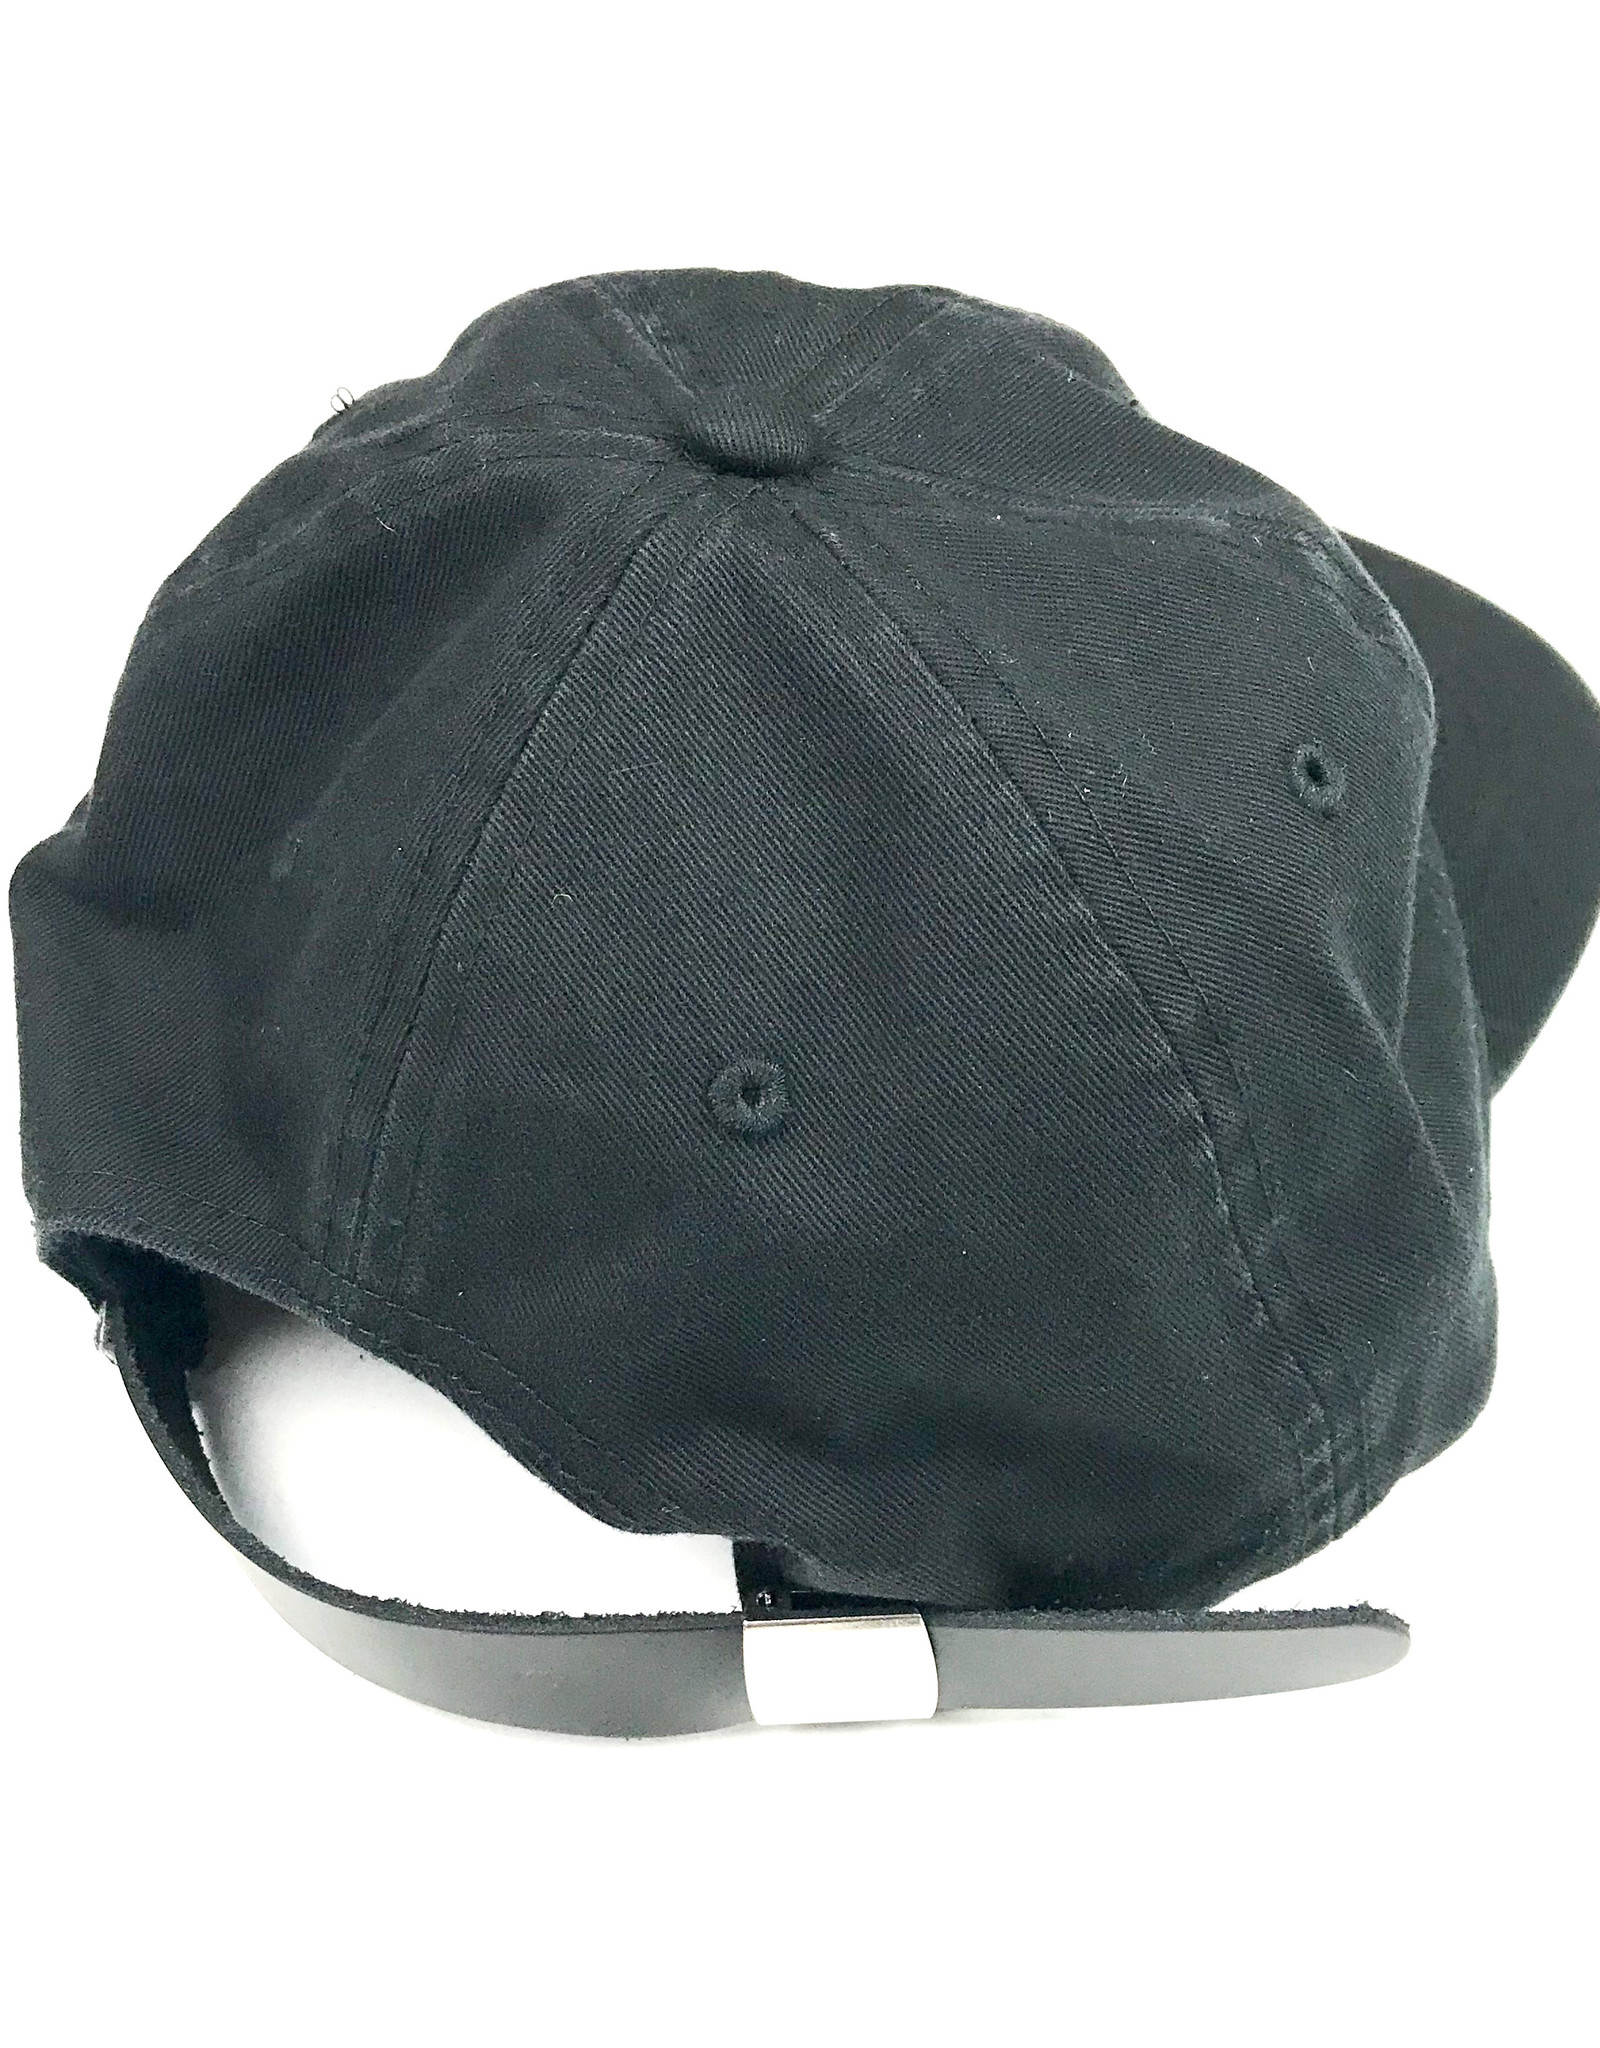 KINGSWELL KINGSWELL MOUSE HEAD HAT - BLACK